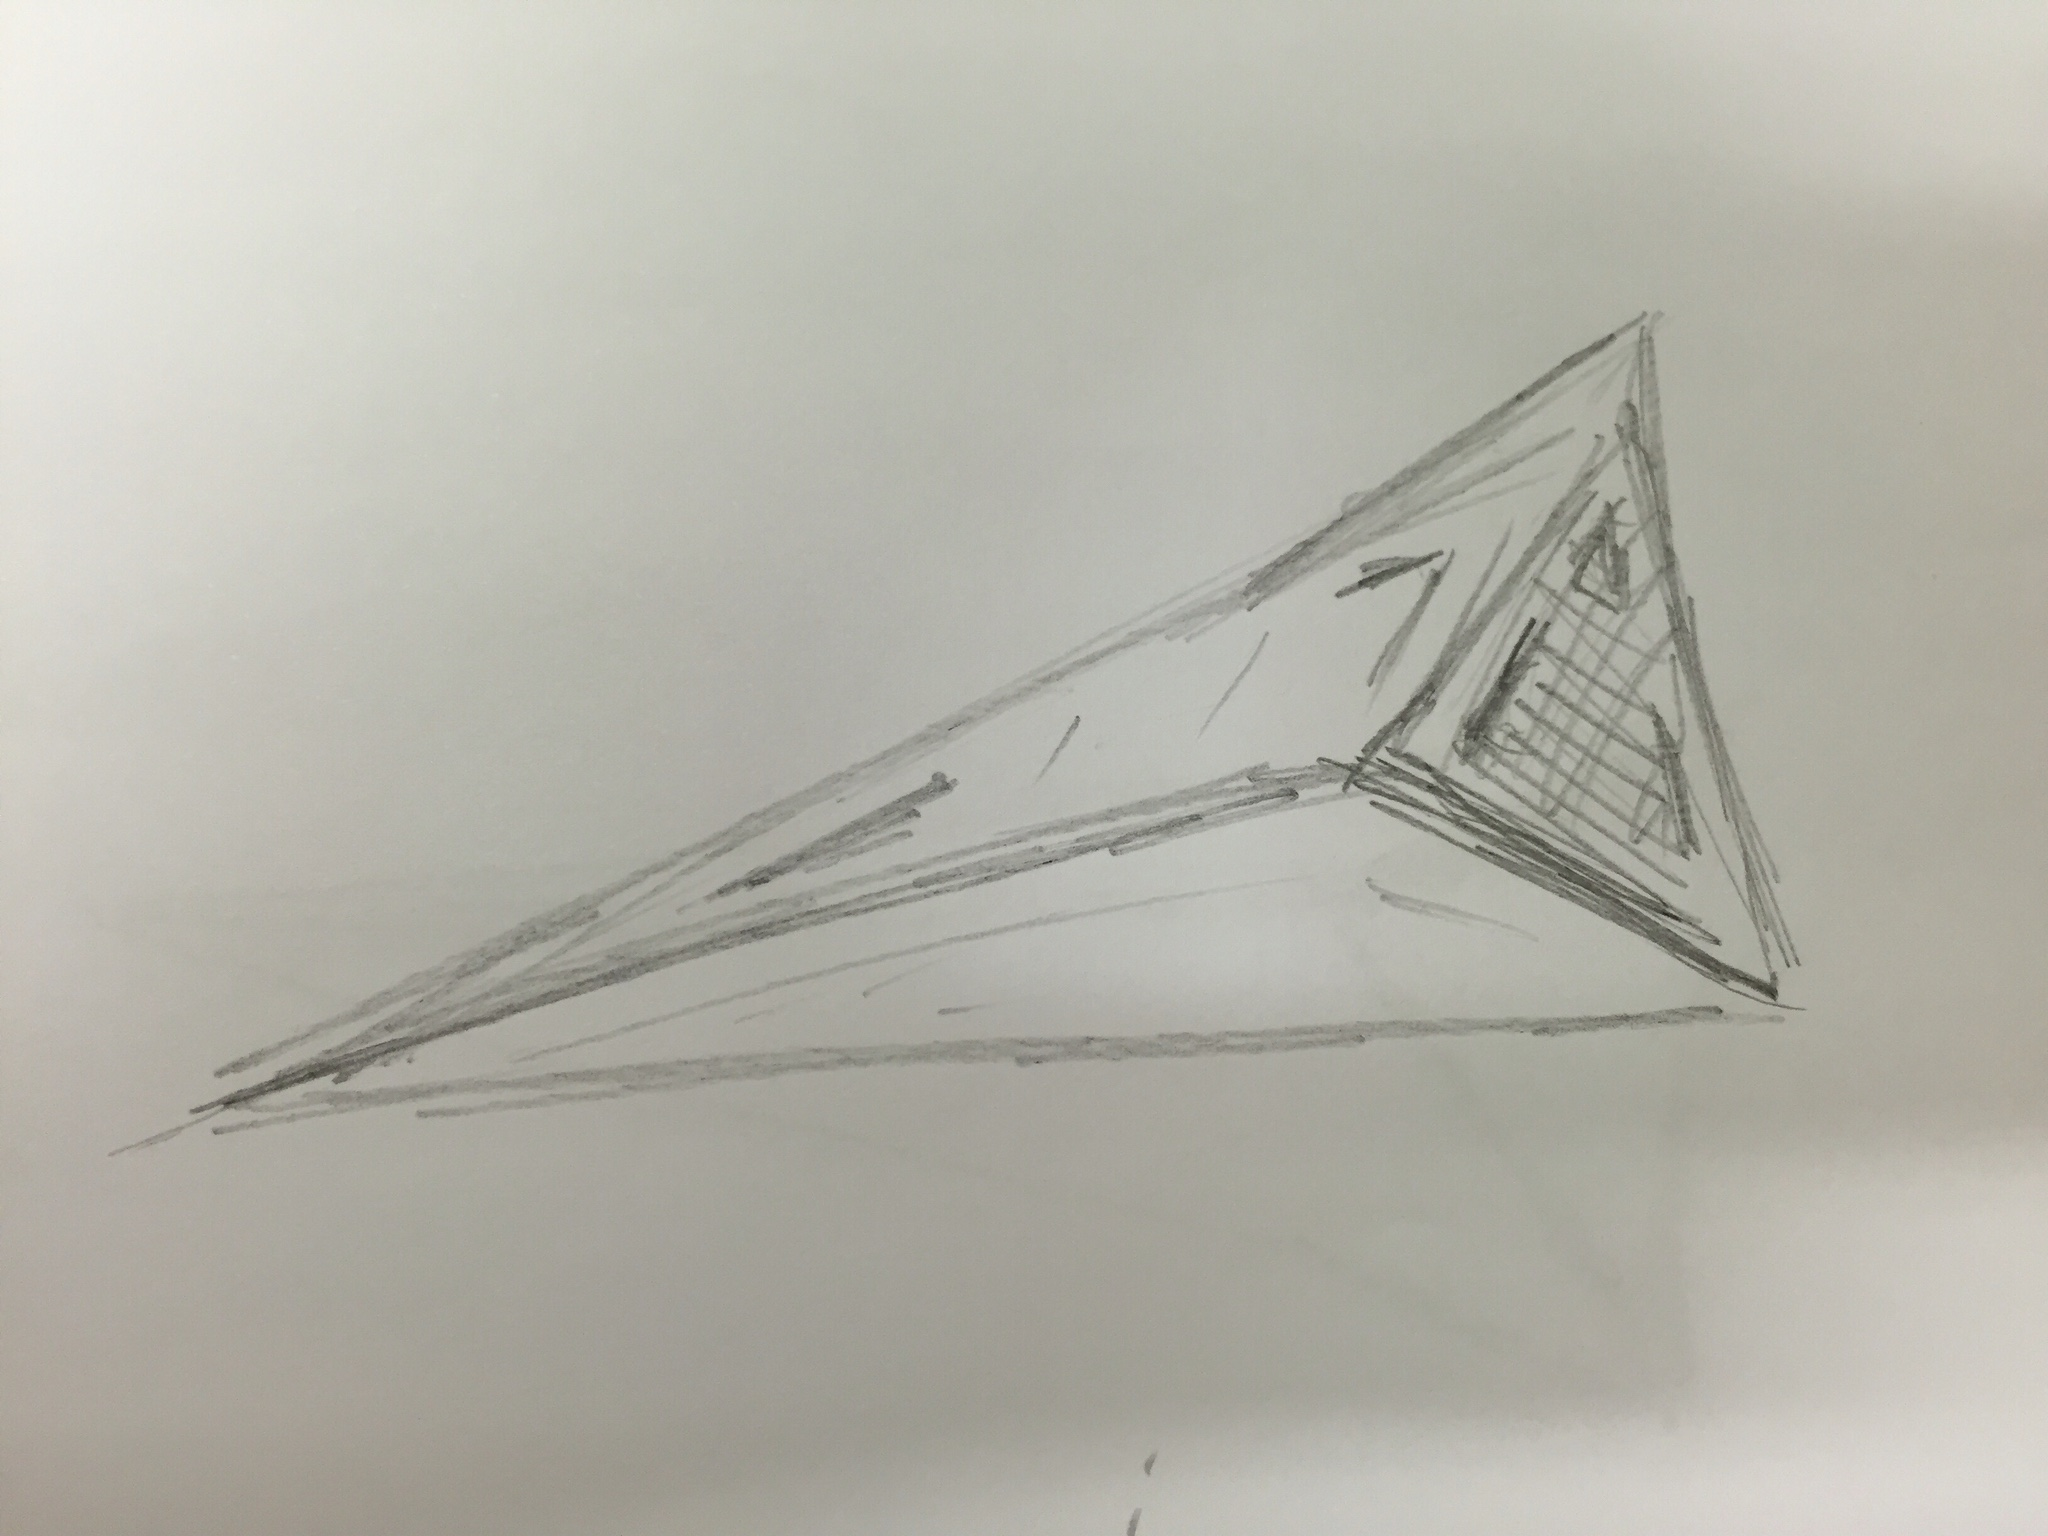 Triangle ufo seen 1970's or 80's